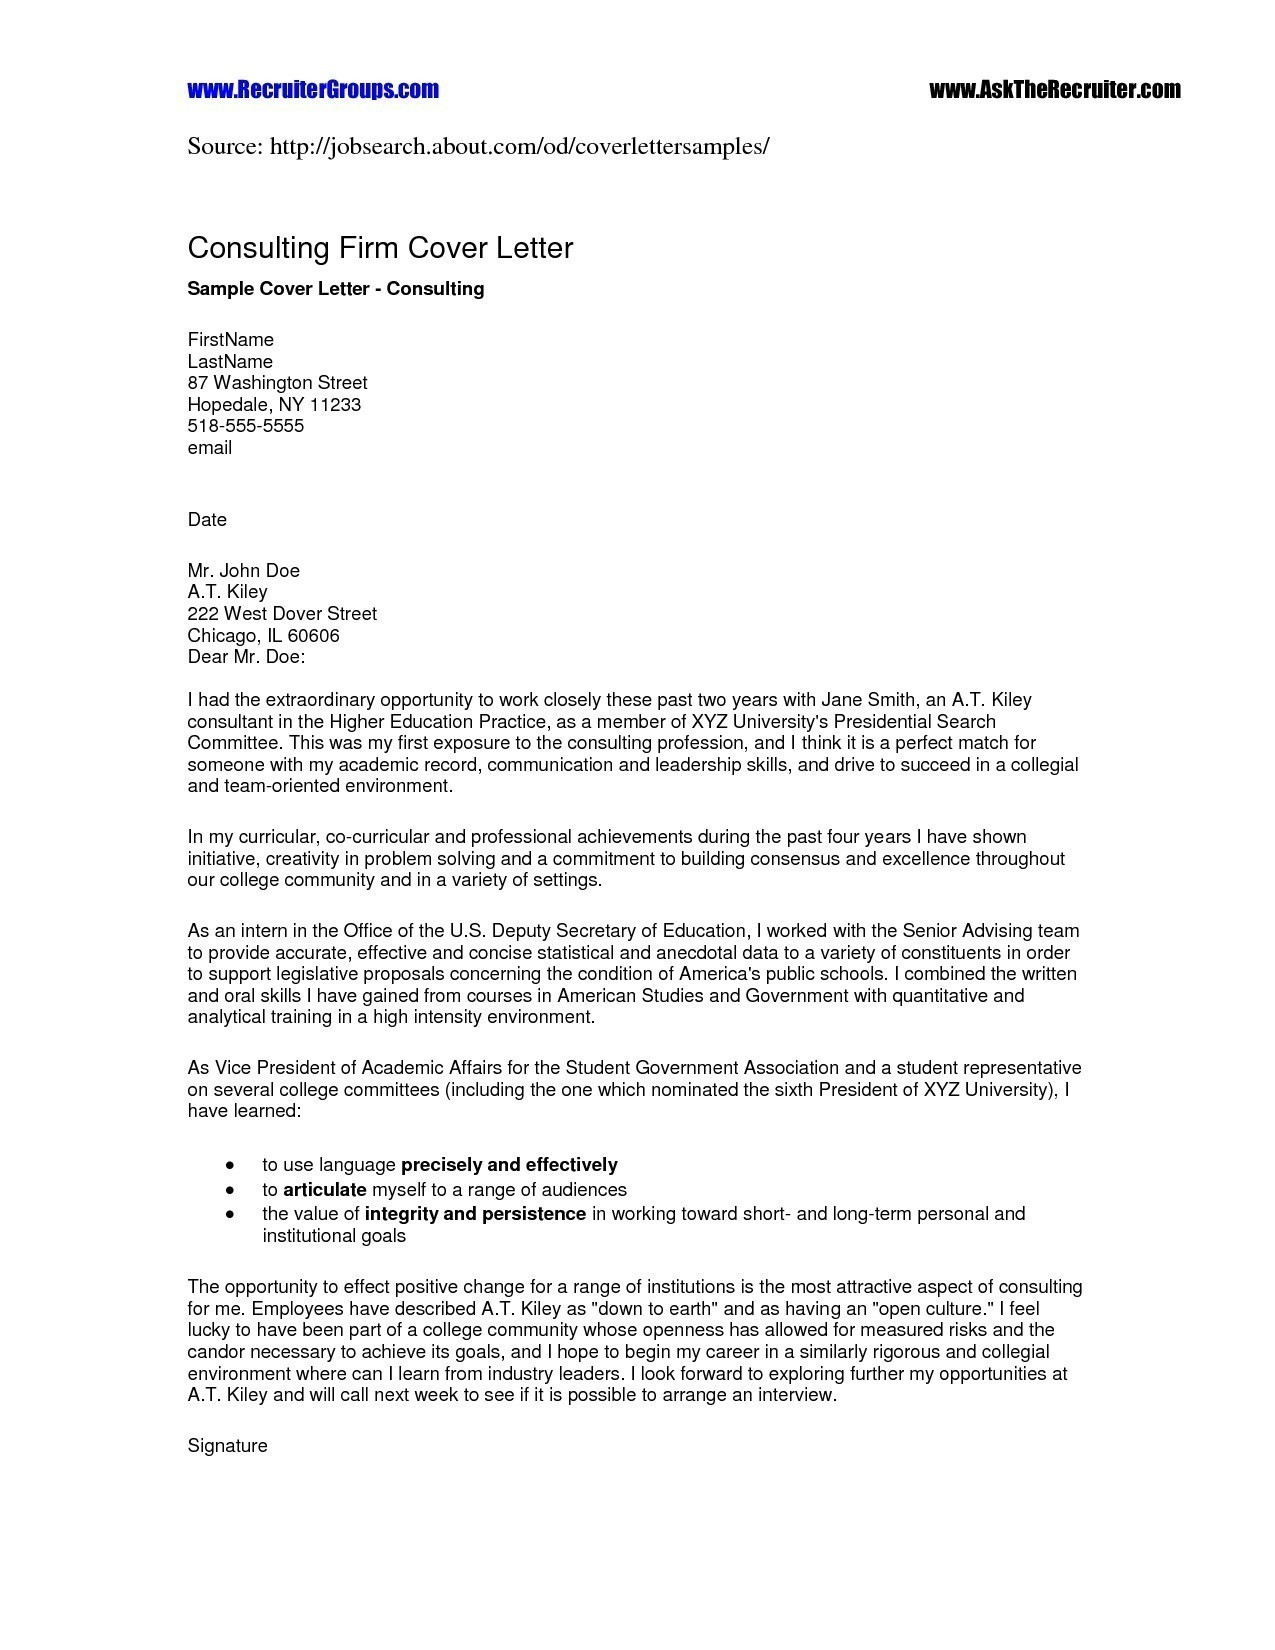 Letter Of Recommendation Letter Template - Resume Templates Copy and Paste Inspirational New Job Fer Letter